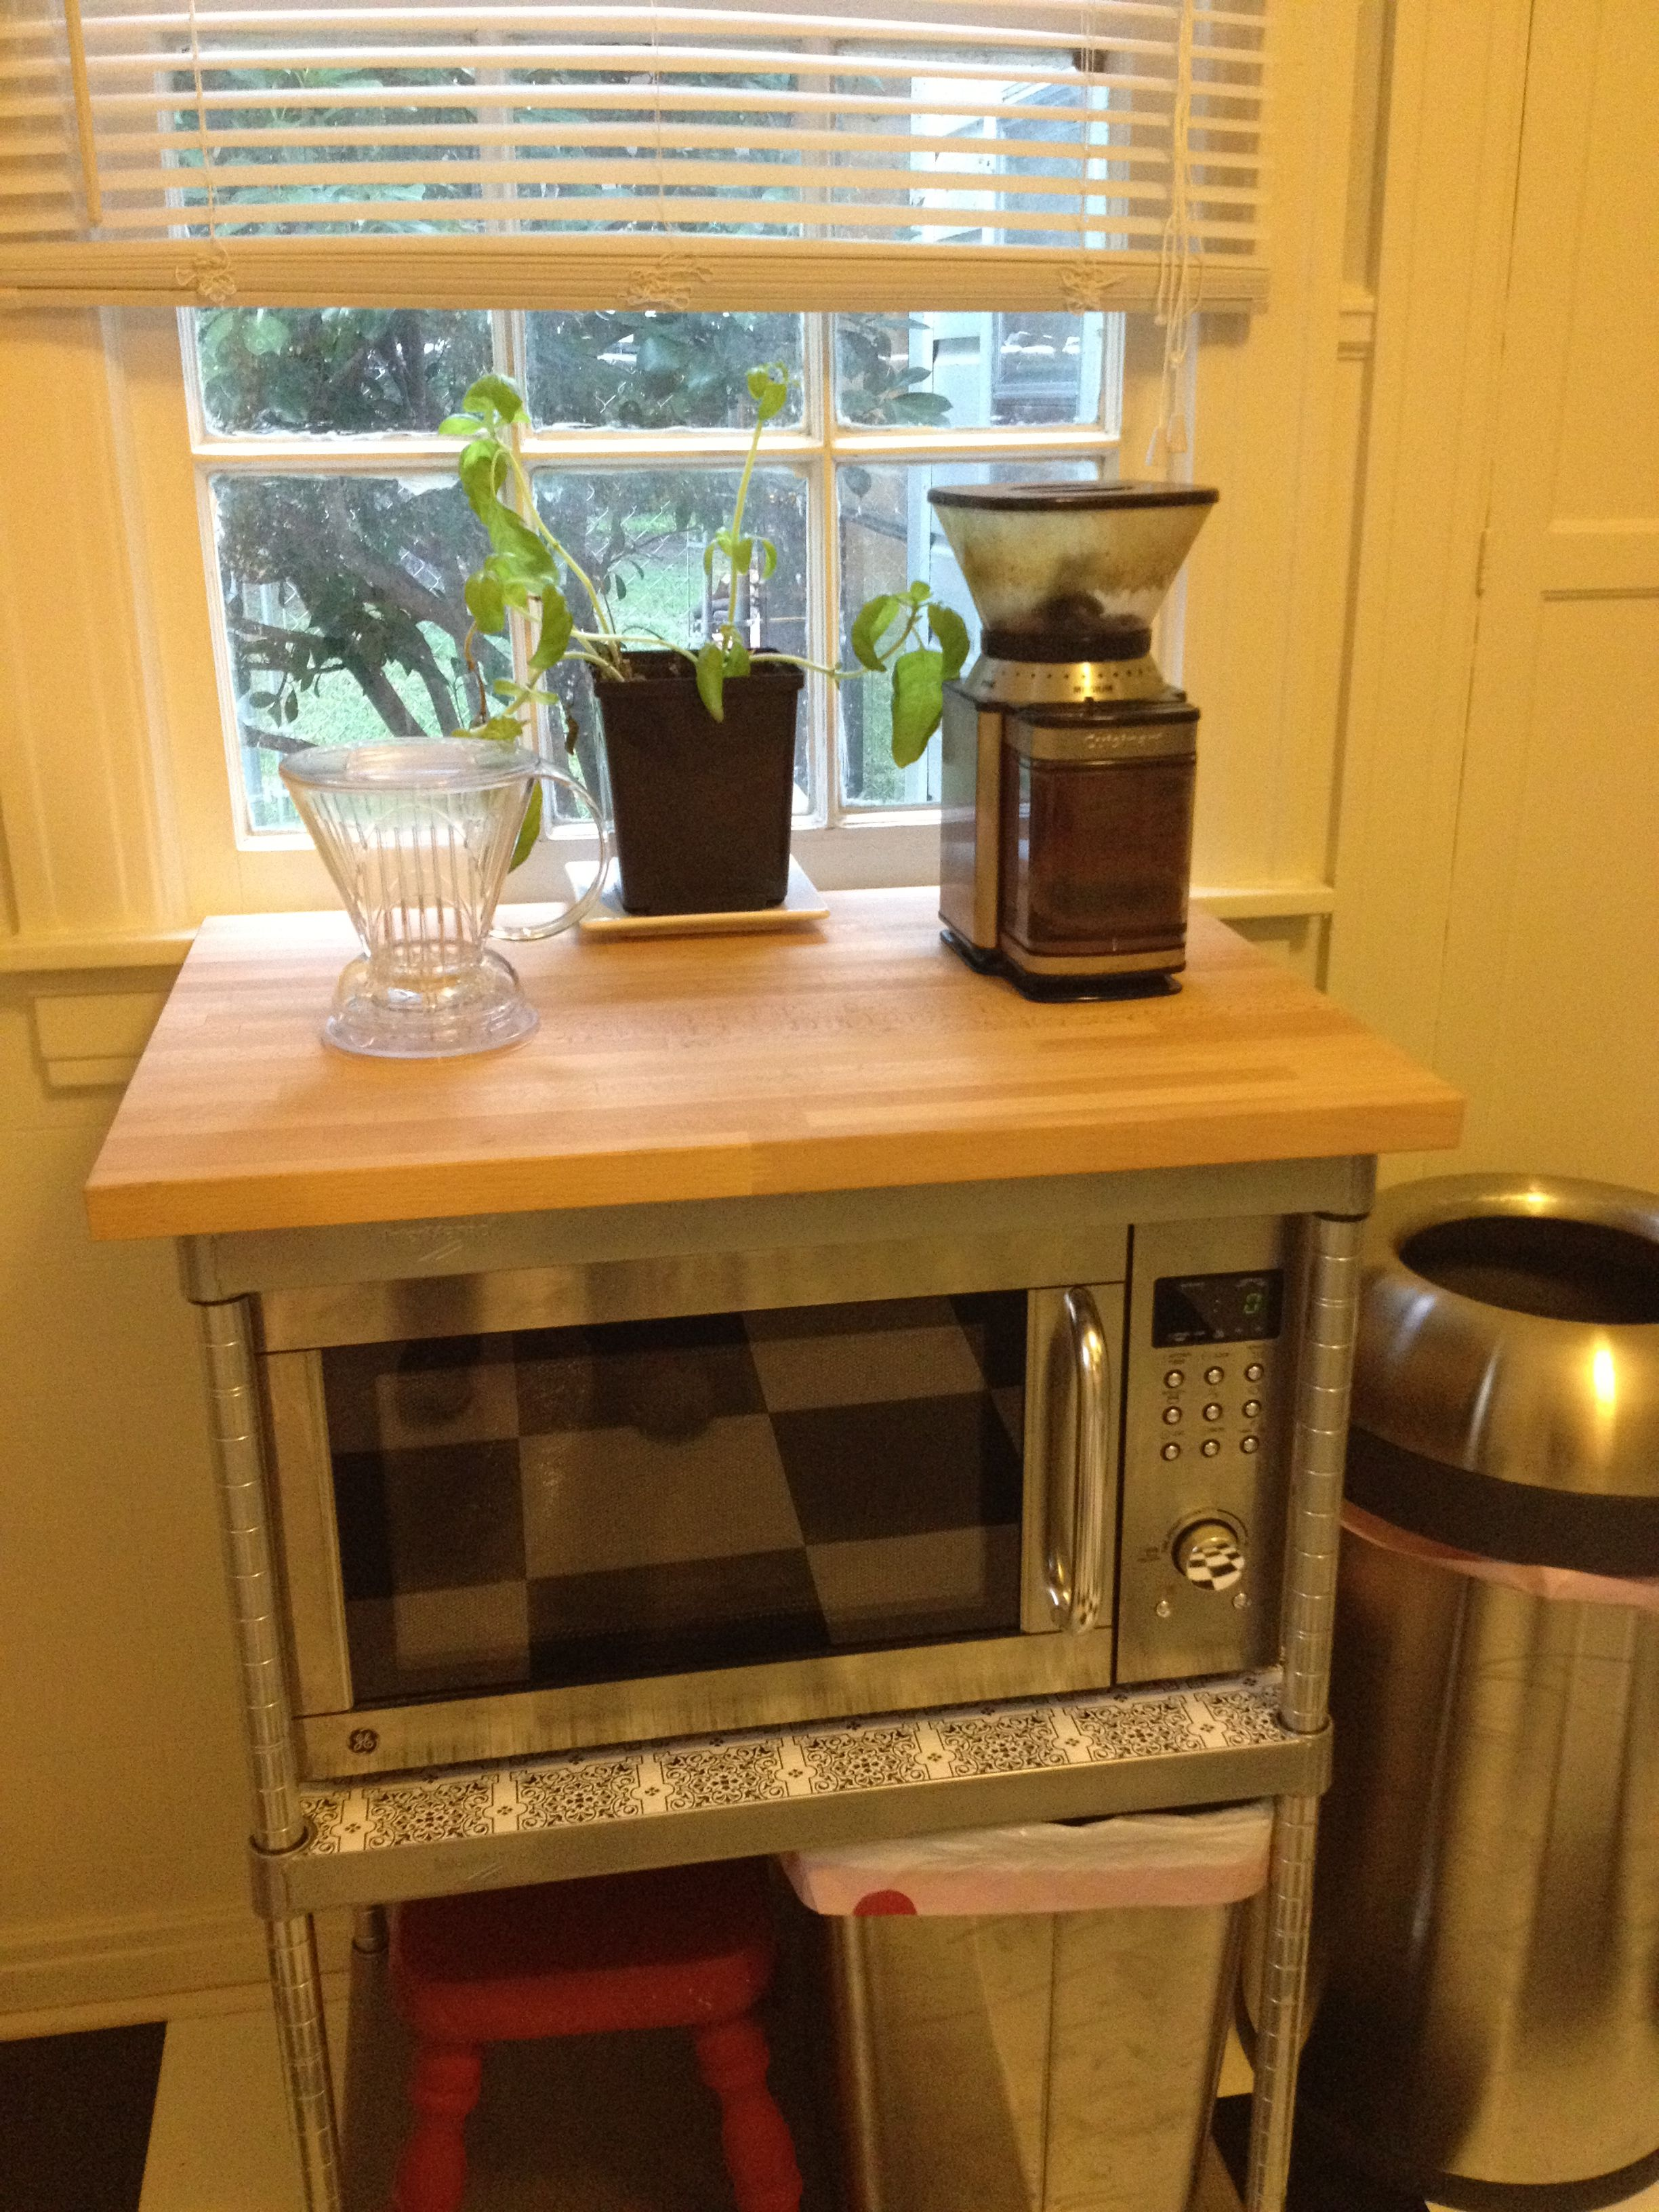 kitchen coffee cart stainless steel outdoor microwave stand station retro redo vintage